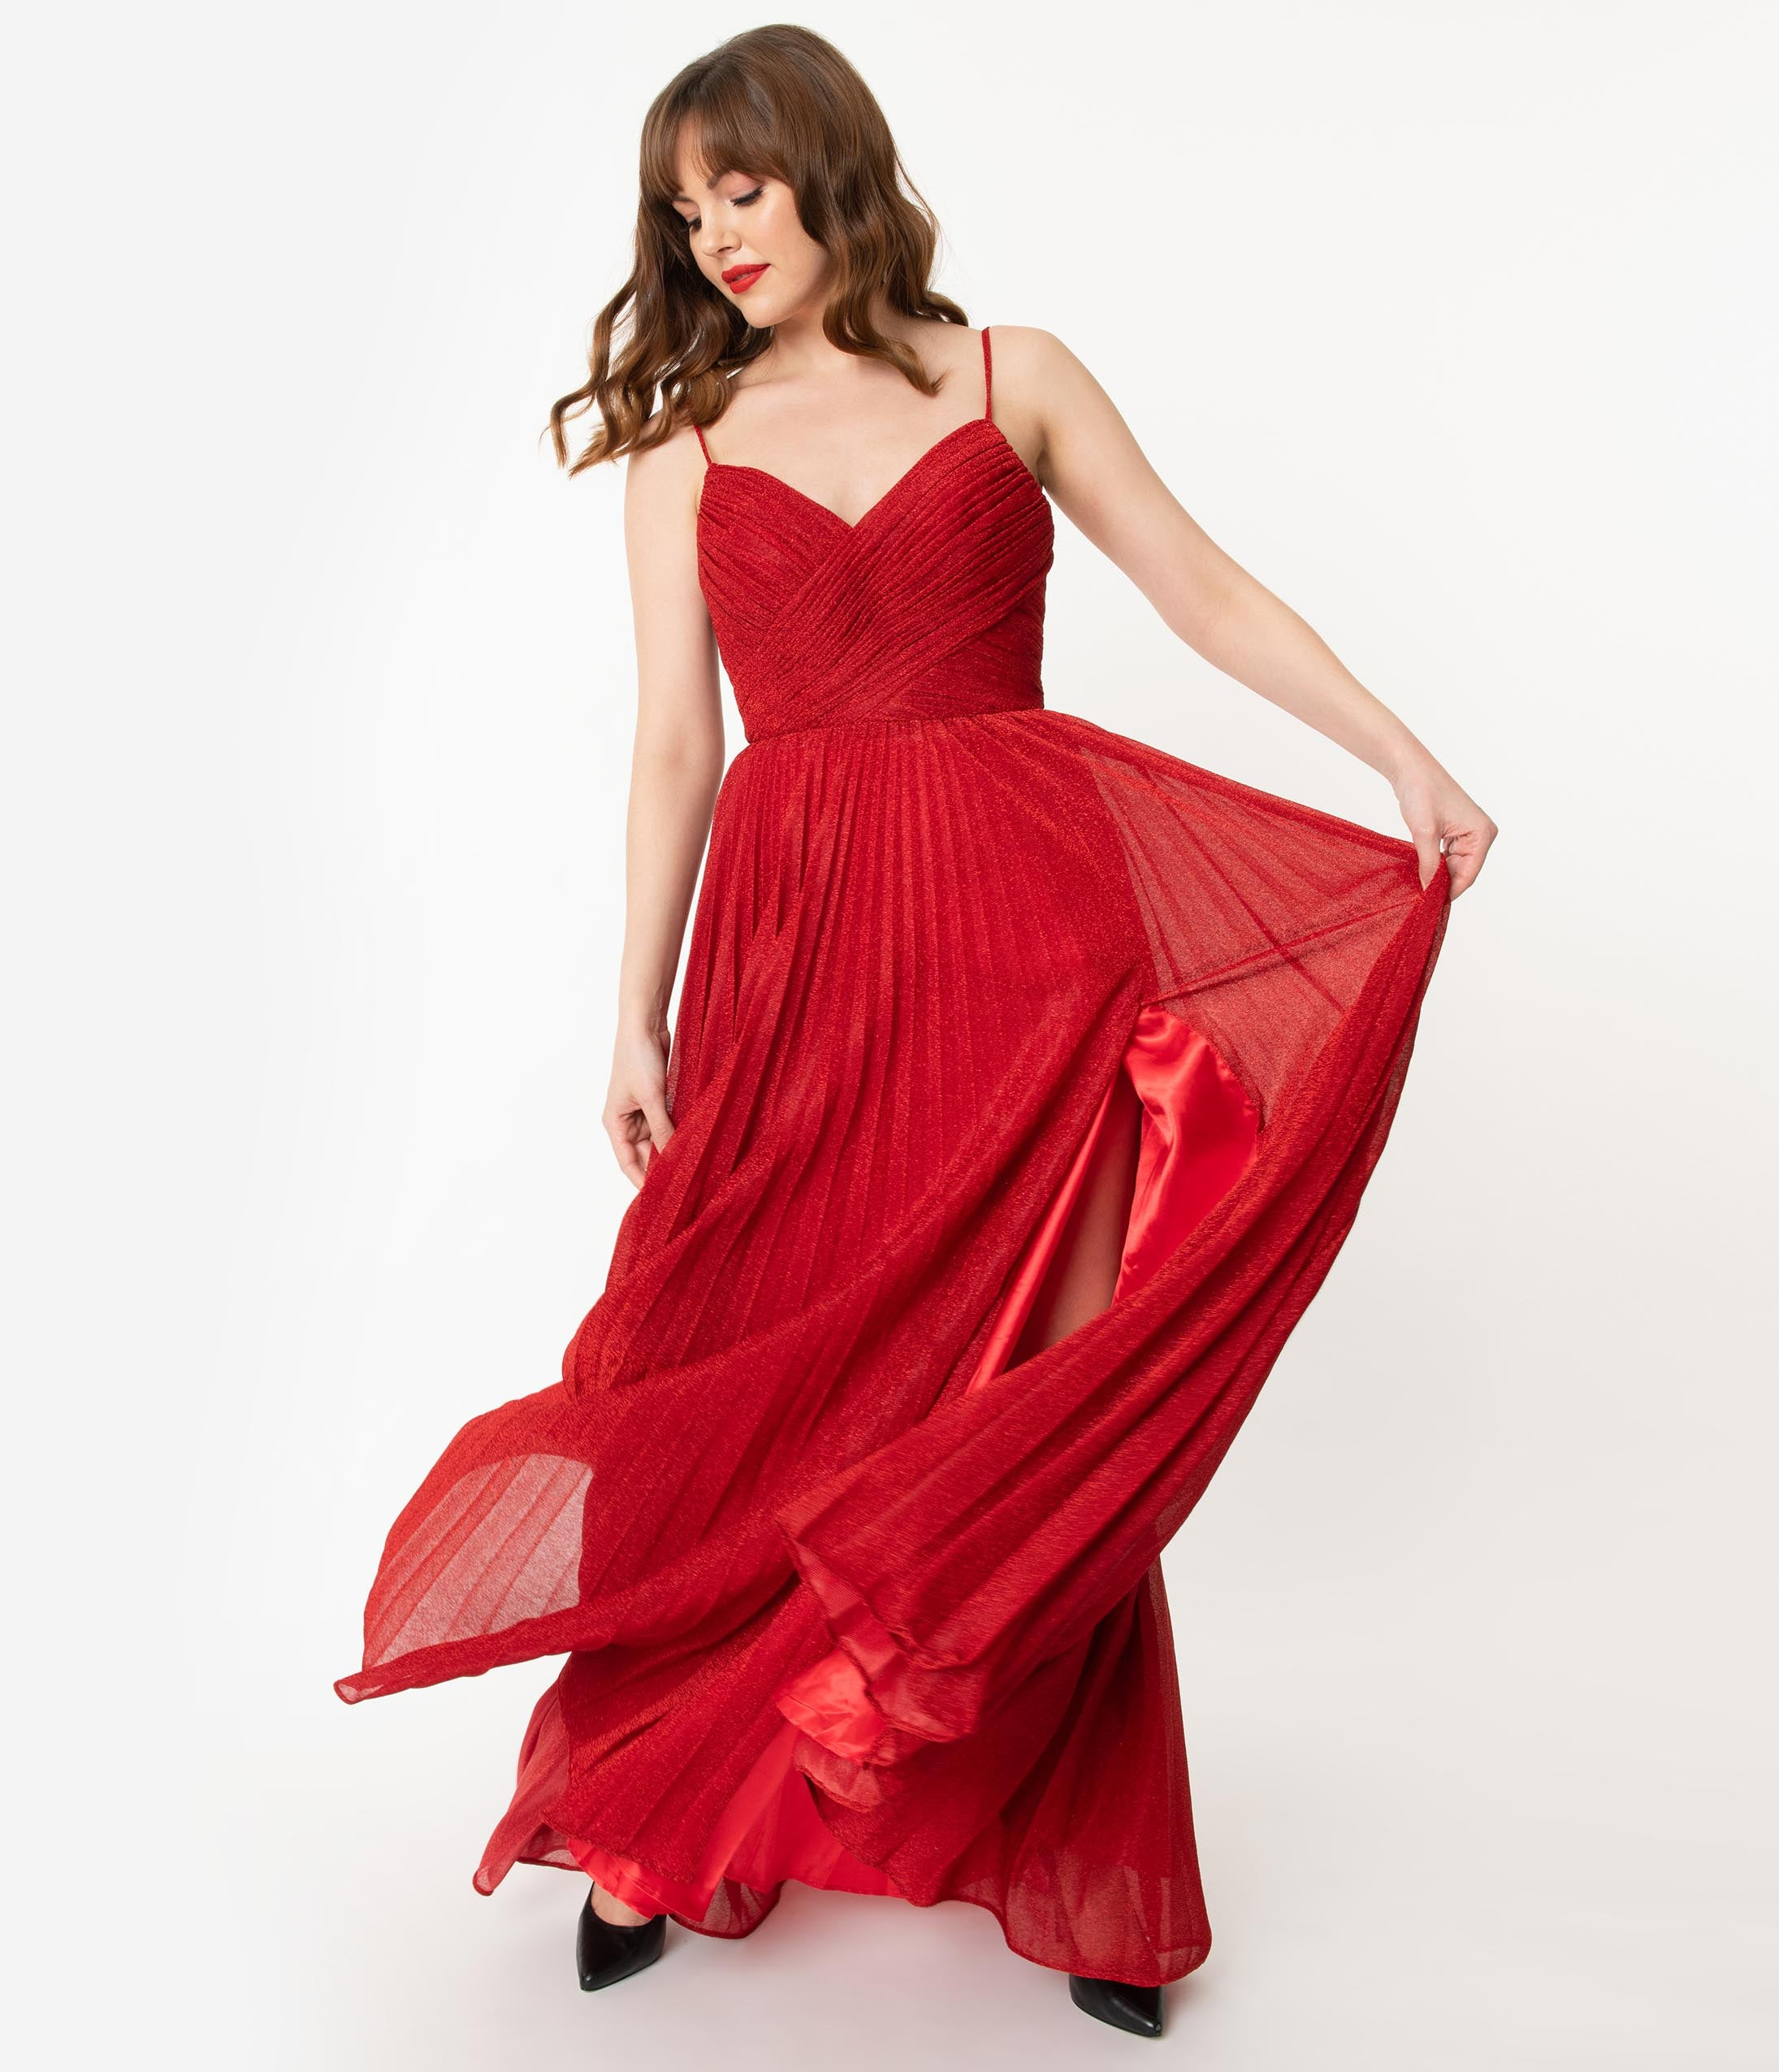 1930s Evening Dresses | Old Hollywood Silver Screen Dresses Red Sparkle Pleated Long Evening Dress $150.00 AT vintagedancer.com